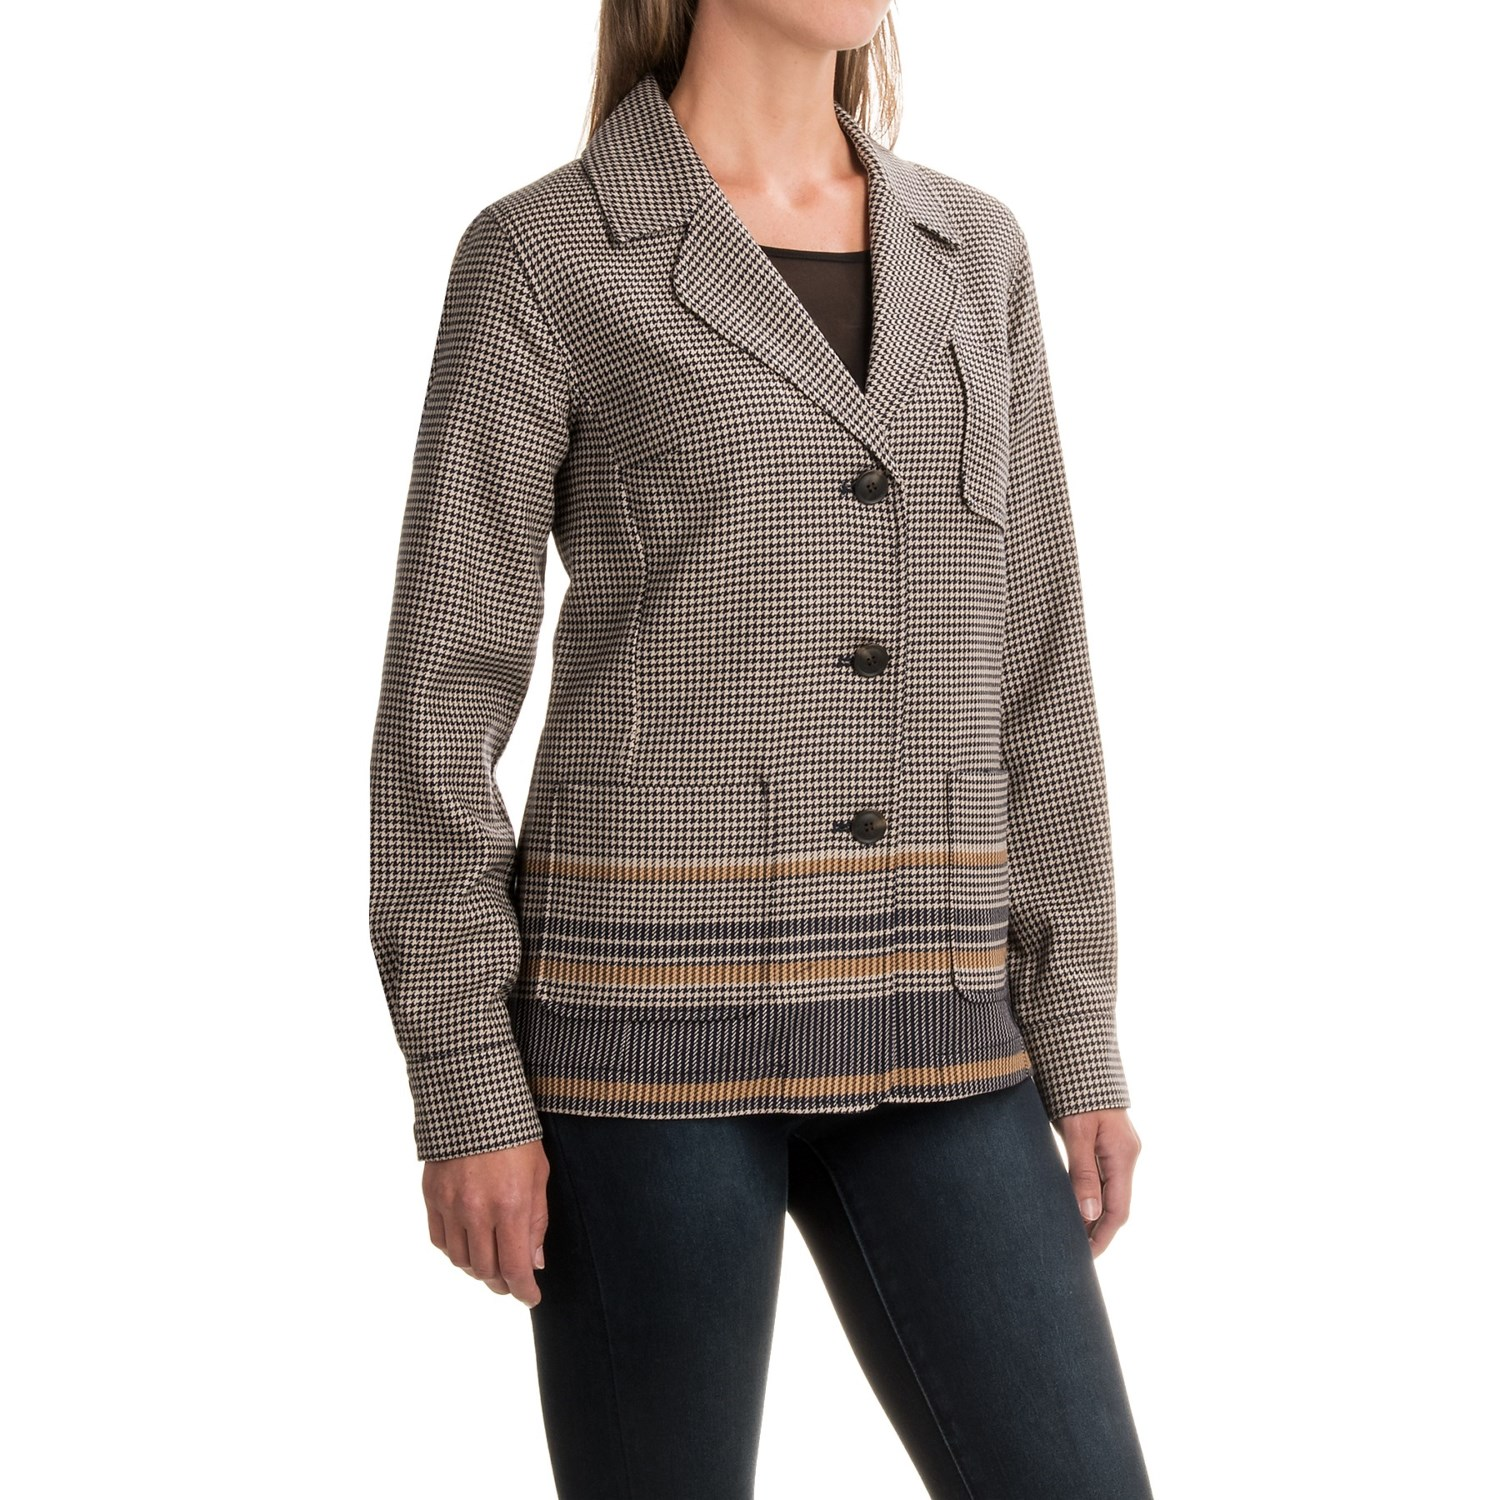 Find great deals on eBay for women wool blazers. Shop with confidence.